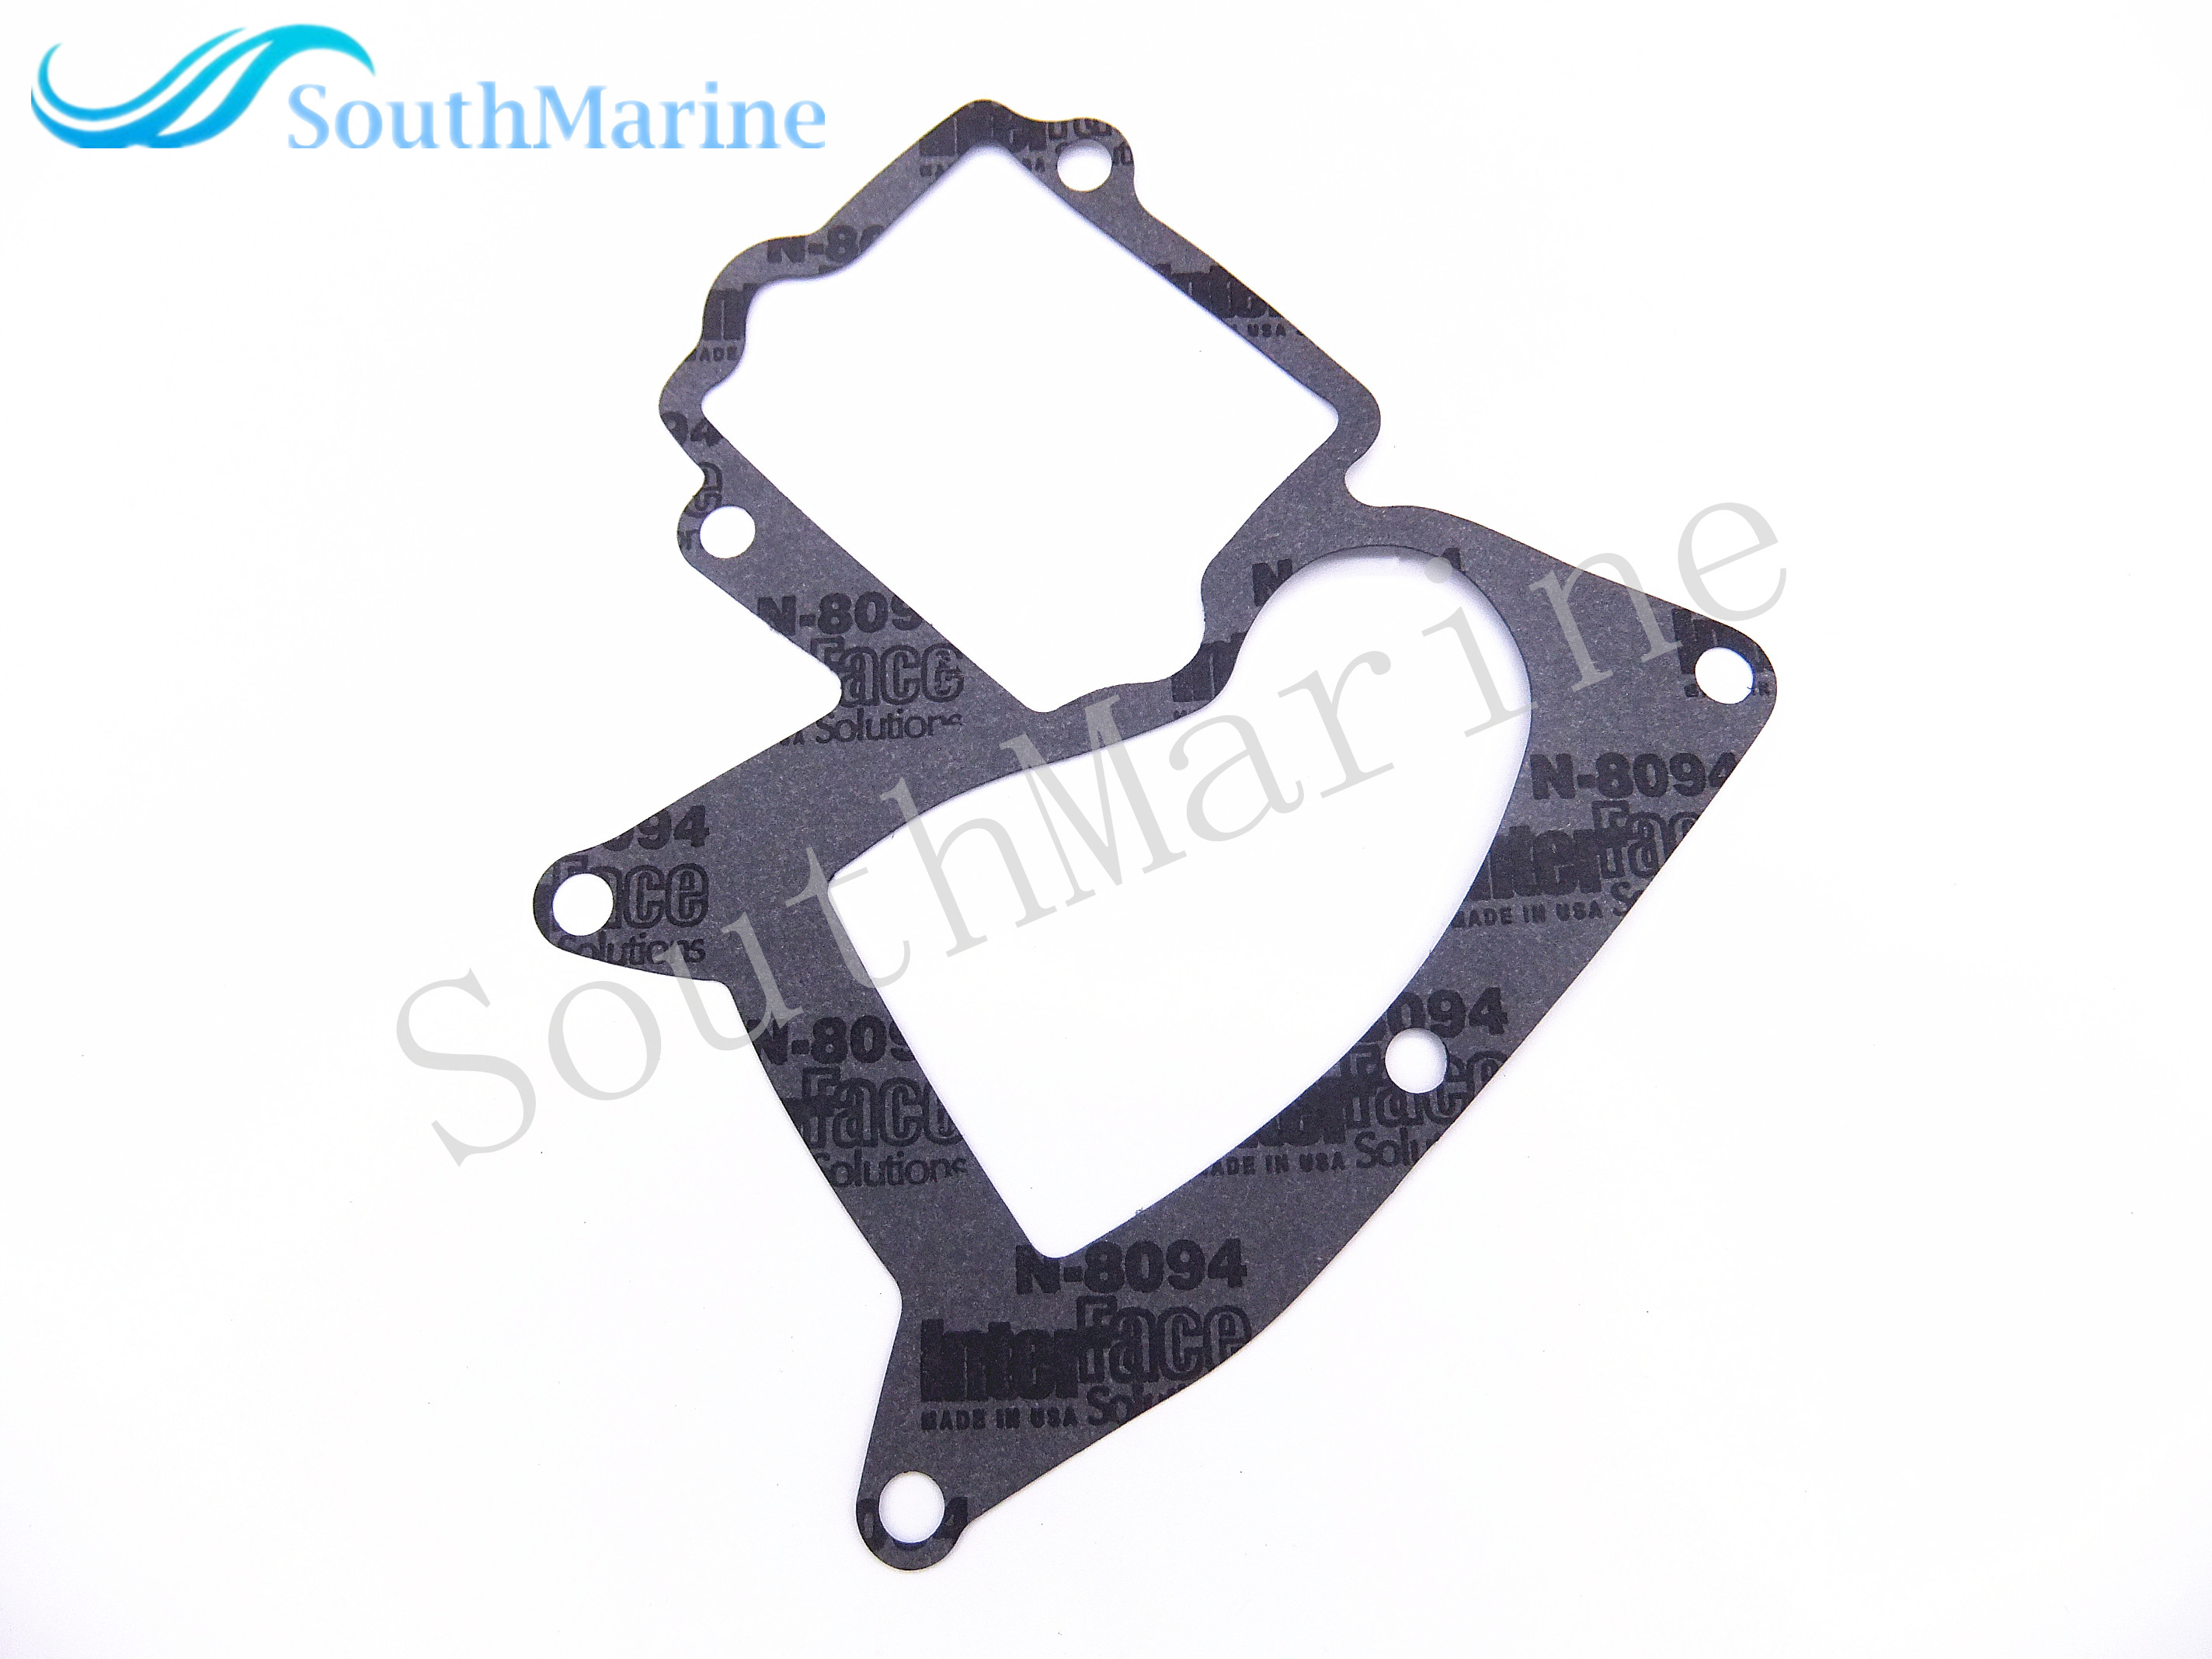 Genteel Boat Motor 6f5-13645-00 01 6f5-13645-a0 A1 A2 Gasket Manifold For Yamaha Outboard C40 E40 40hp 36hp Atv,rv,boat & Other Vehicle